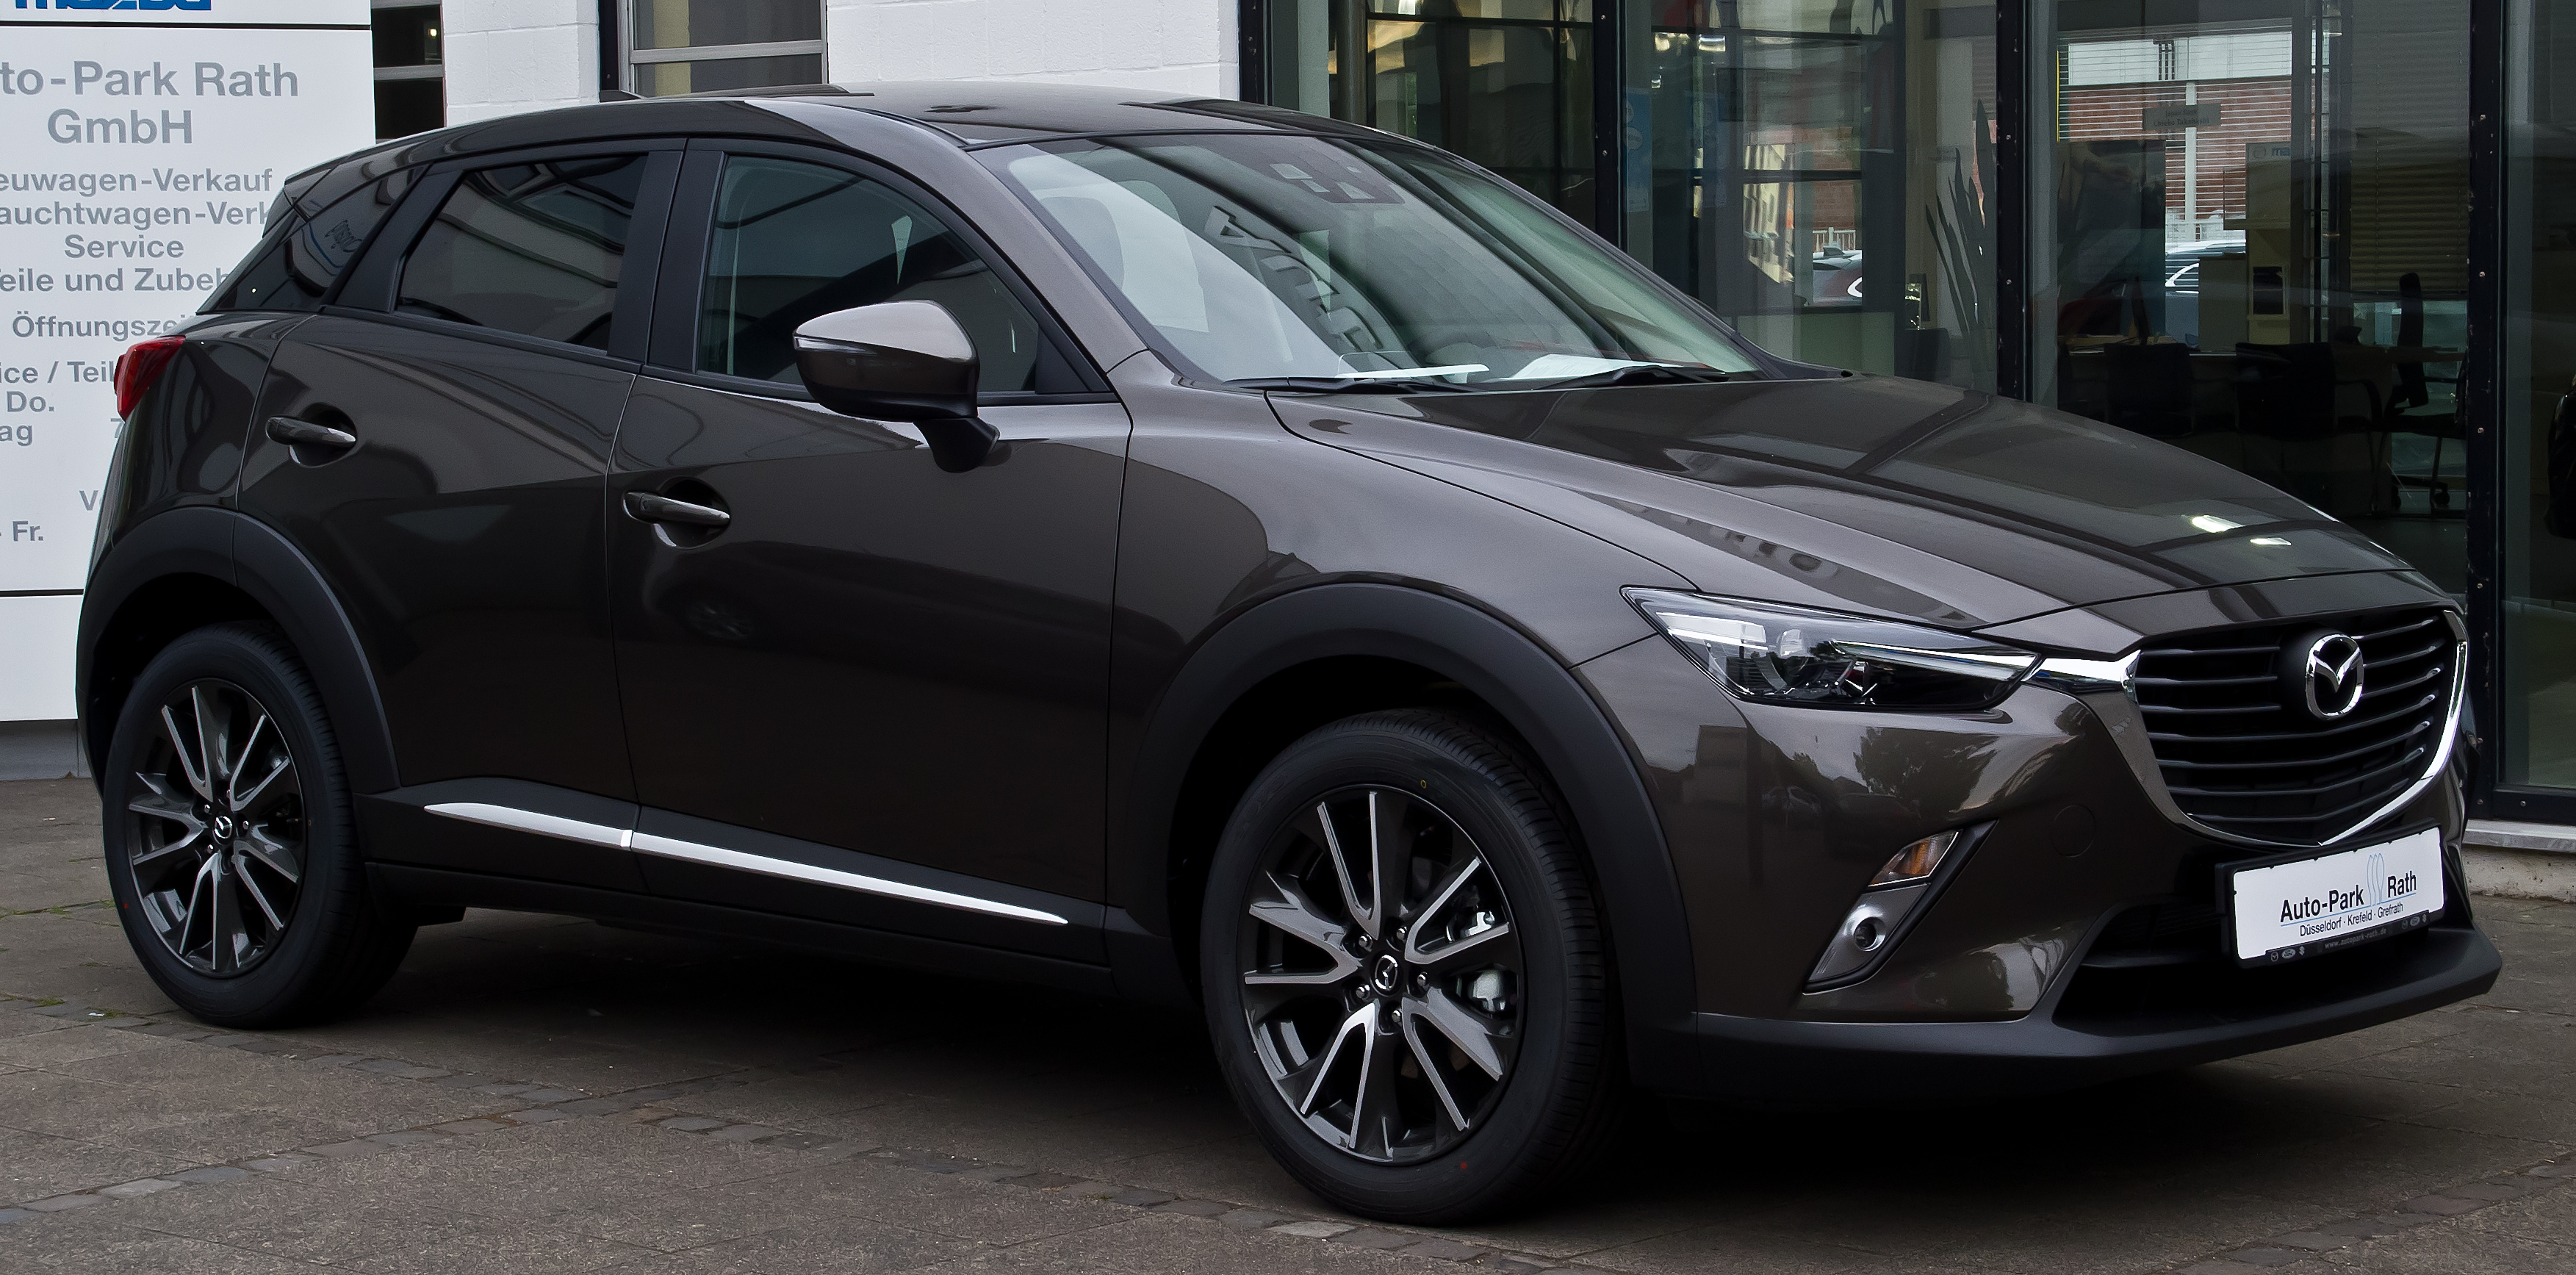 File:Mazda CX-3 SKYACTIV-G 120 FWD Sports-Line ...